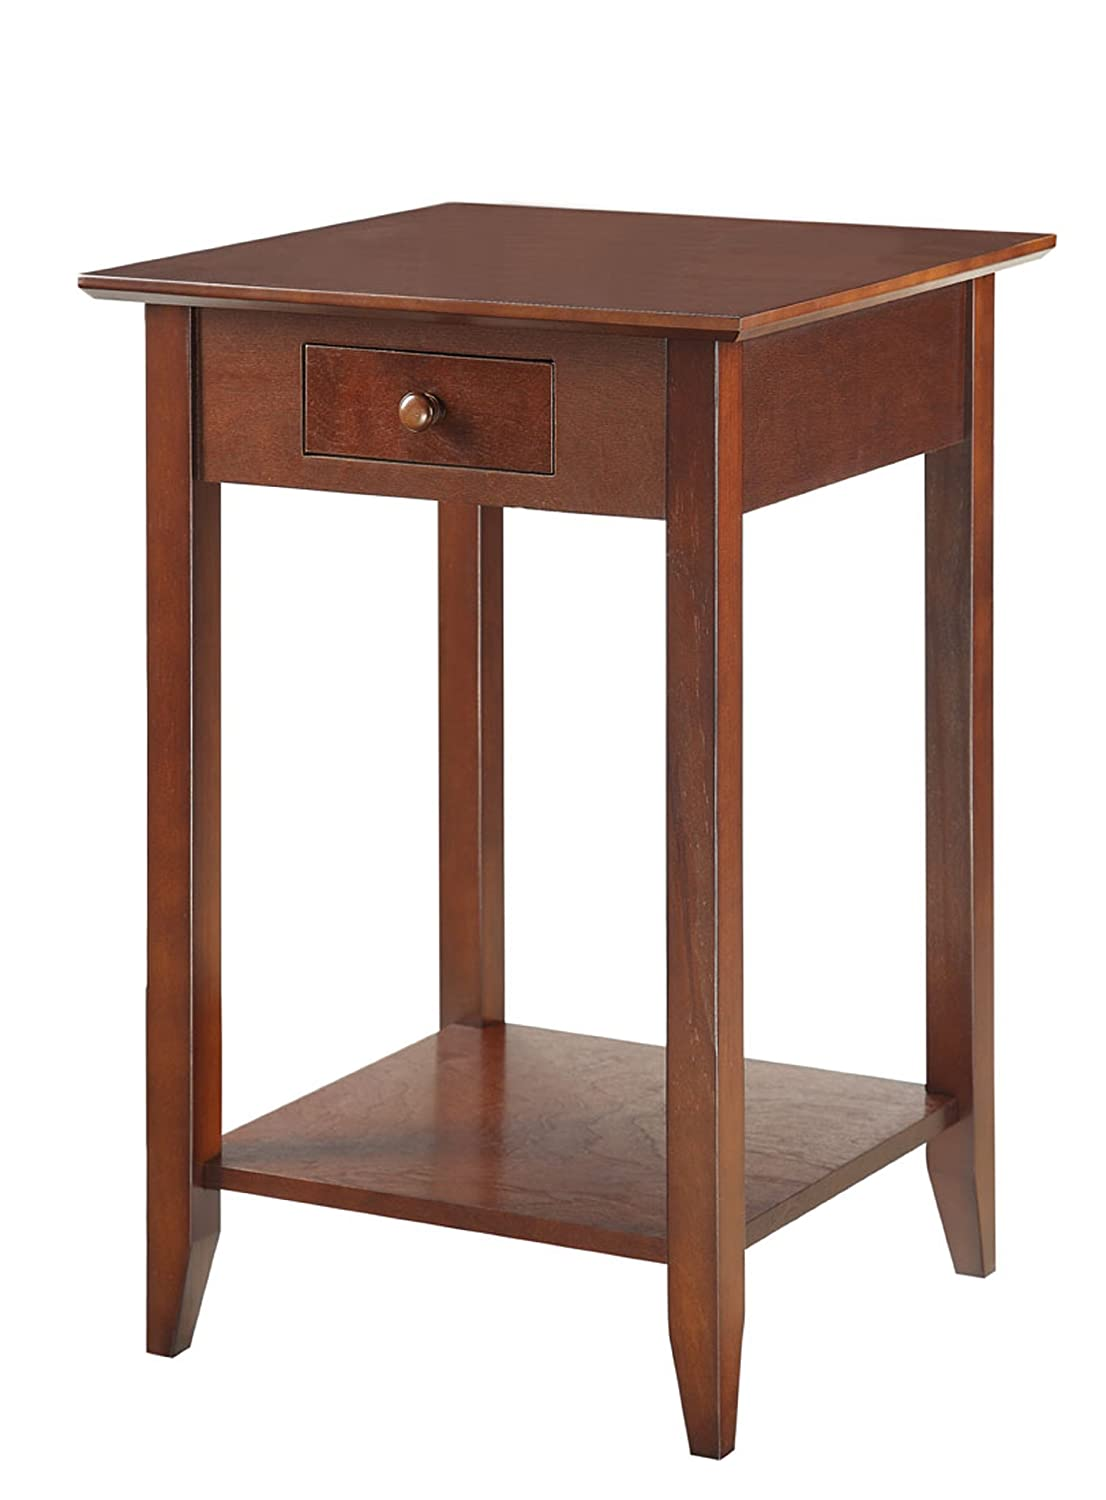 End table with drawer - Amazon Com Convenience Concepts American Heritage End Table With Shelf And Drawer Espresso Kitchen Dining